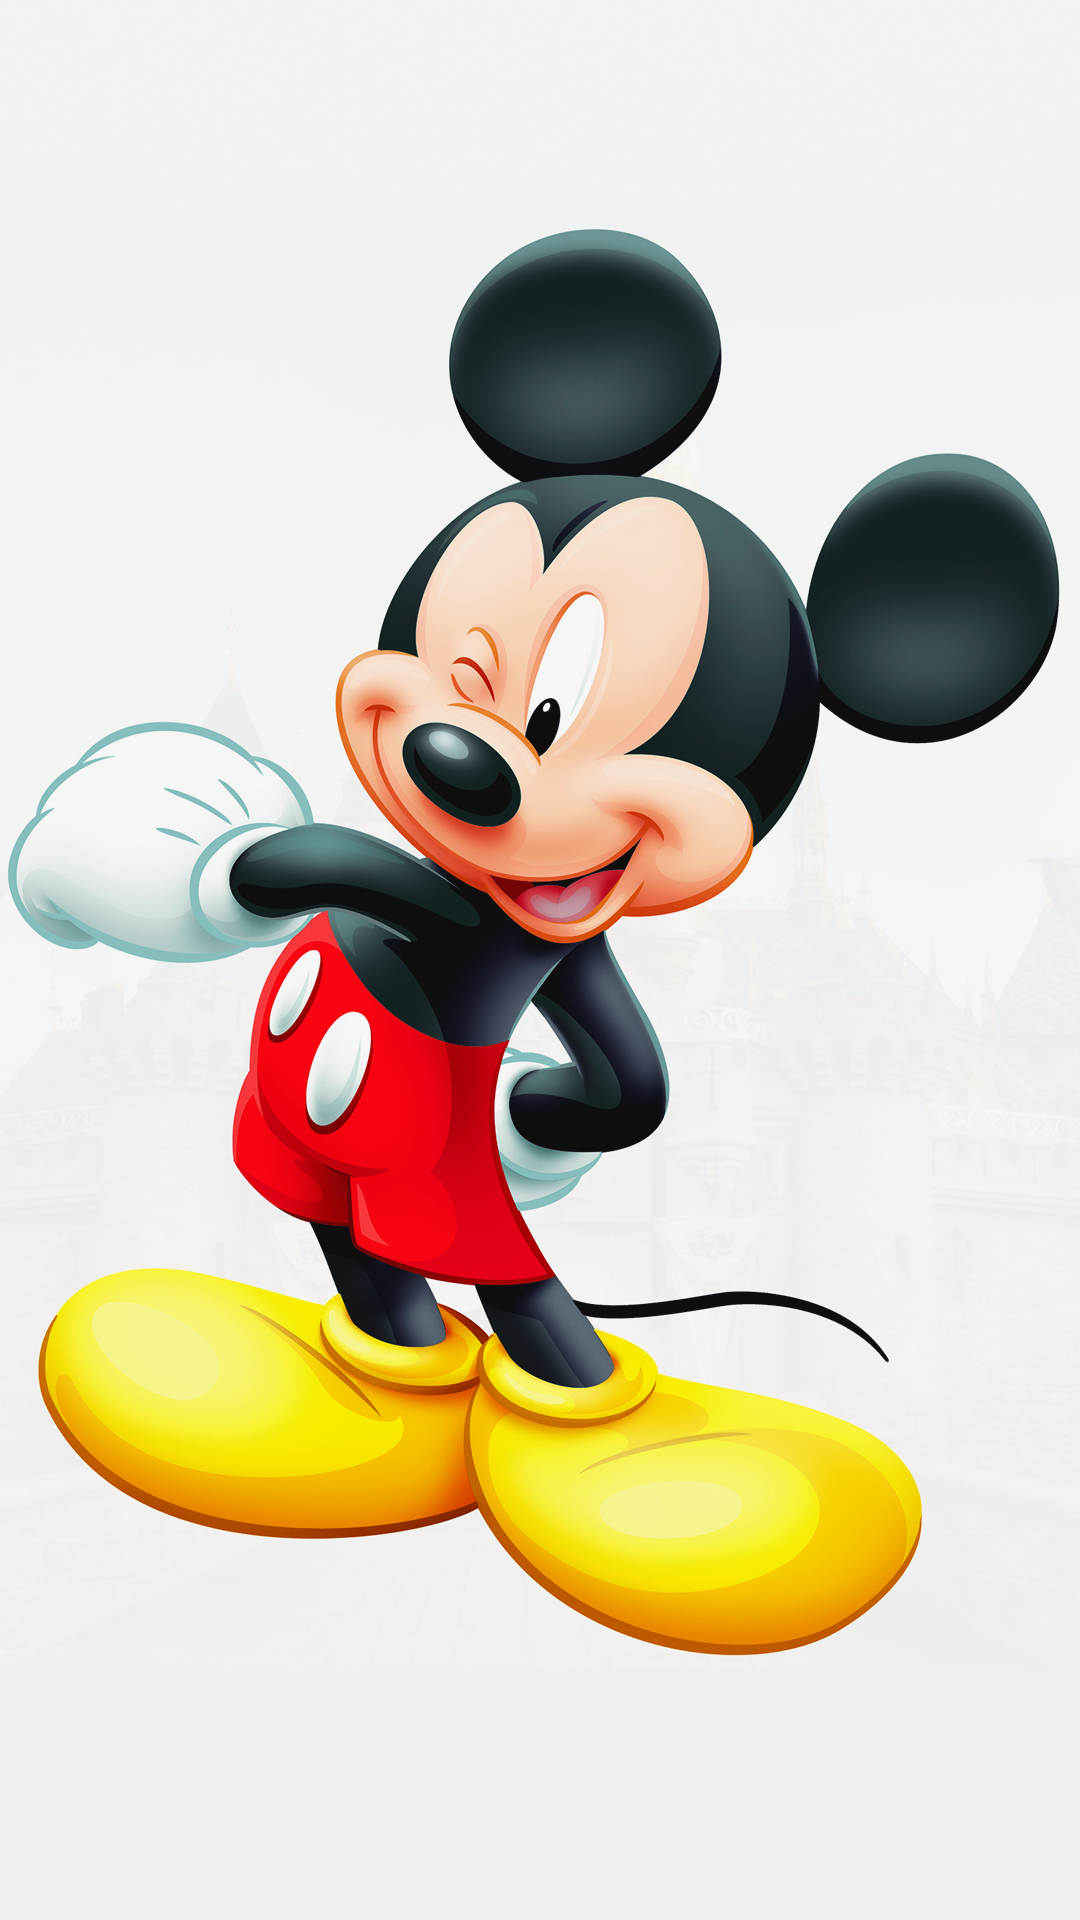 Free Hd Mickey Mouse Iphone Wallpaper For Download 0459